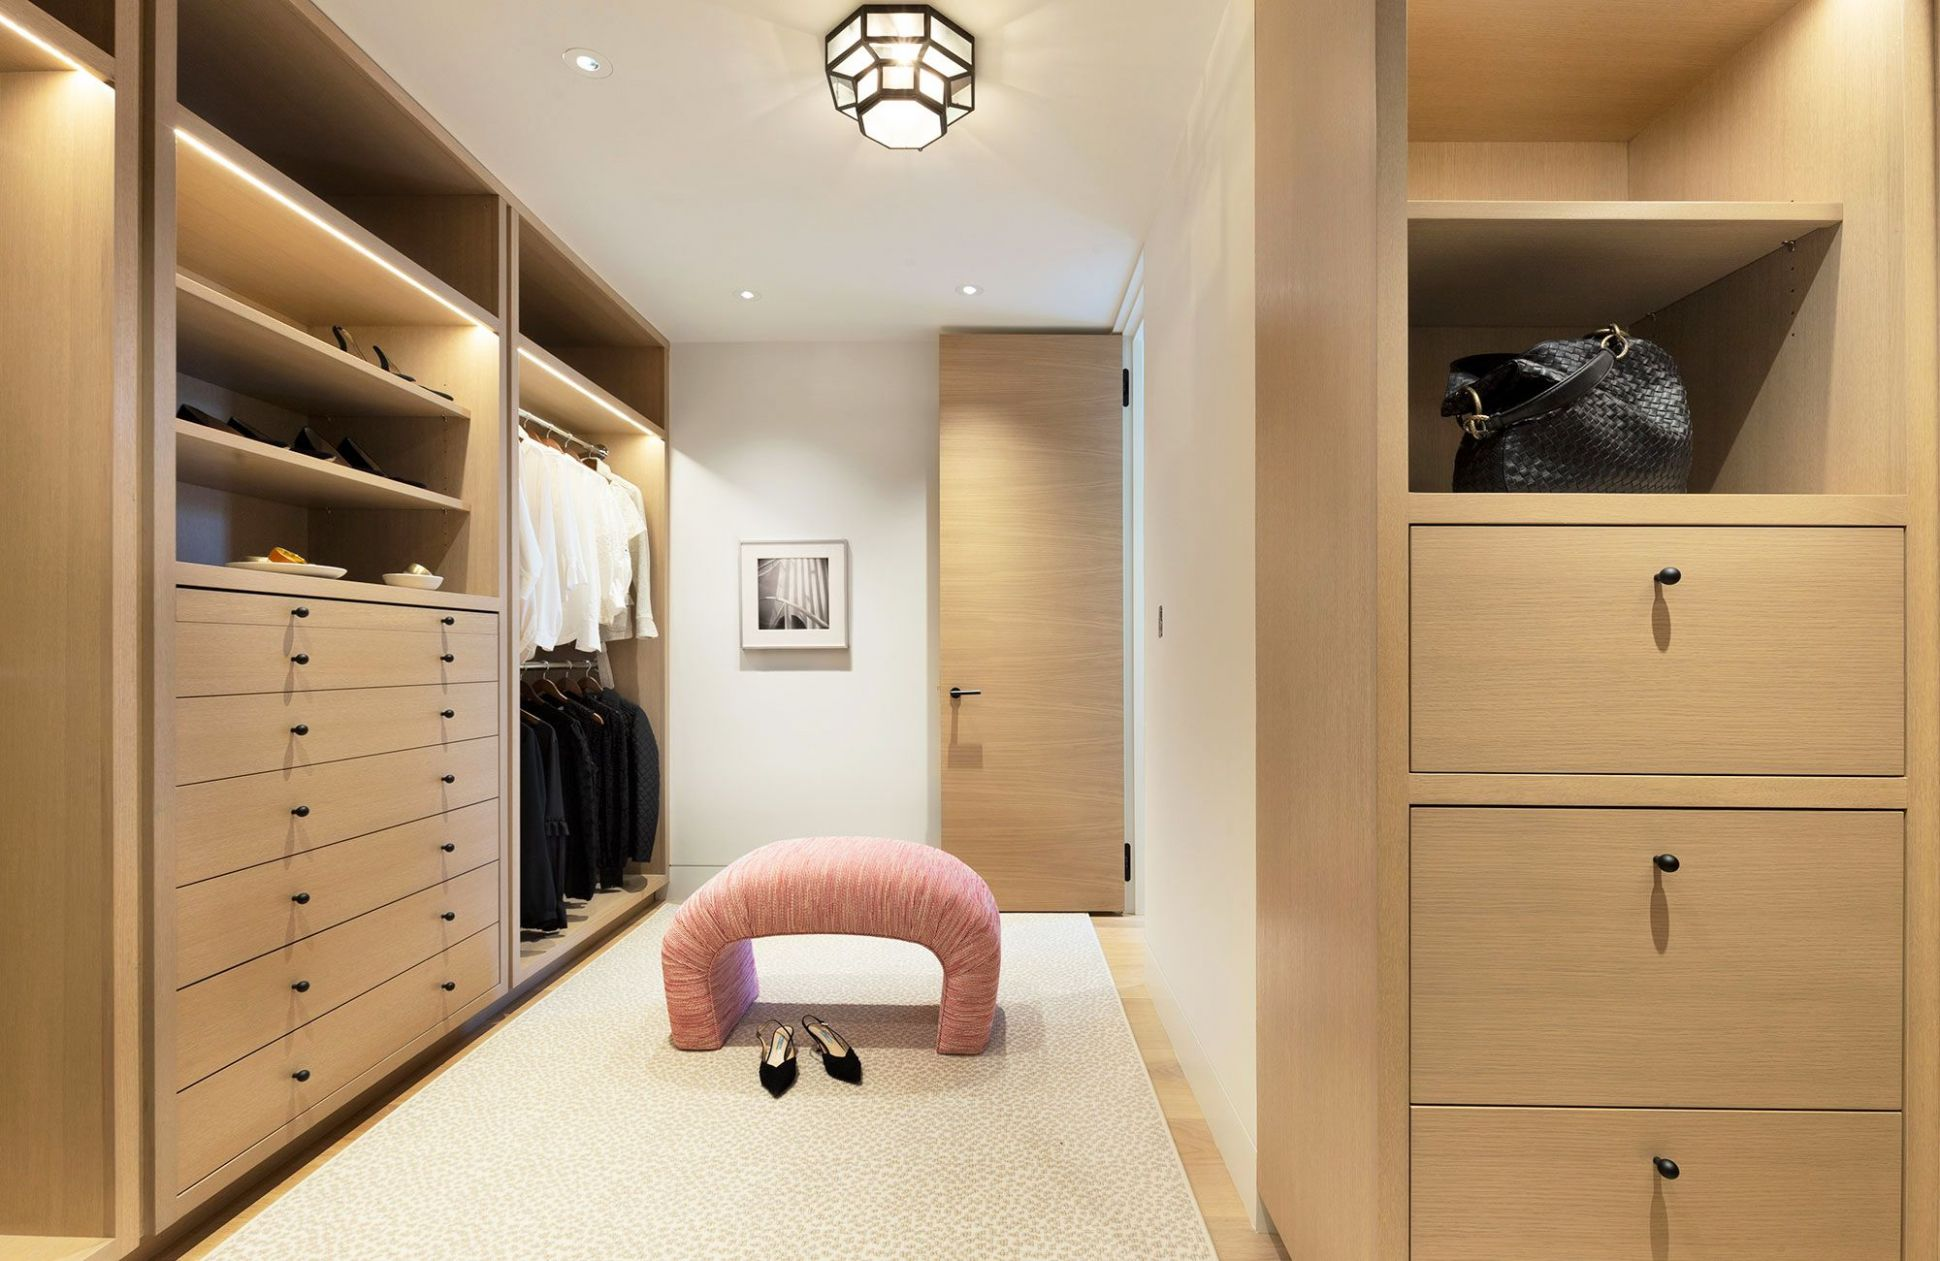 11 Best Walk In Closet Storage Ideas and Designs for Master Bedrooms